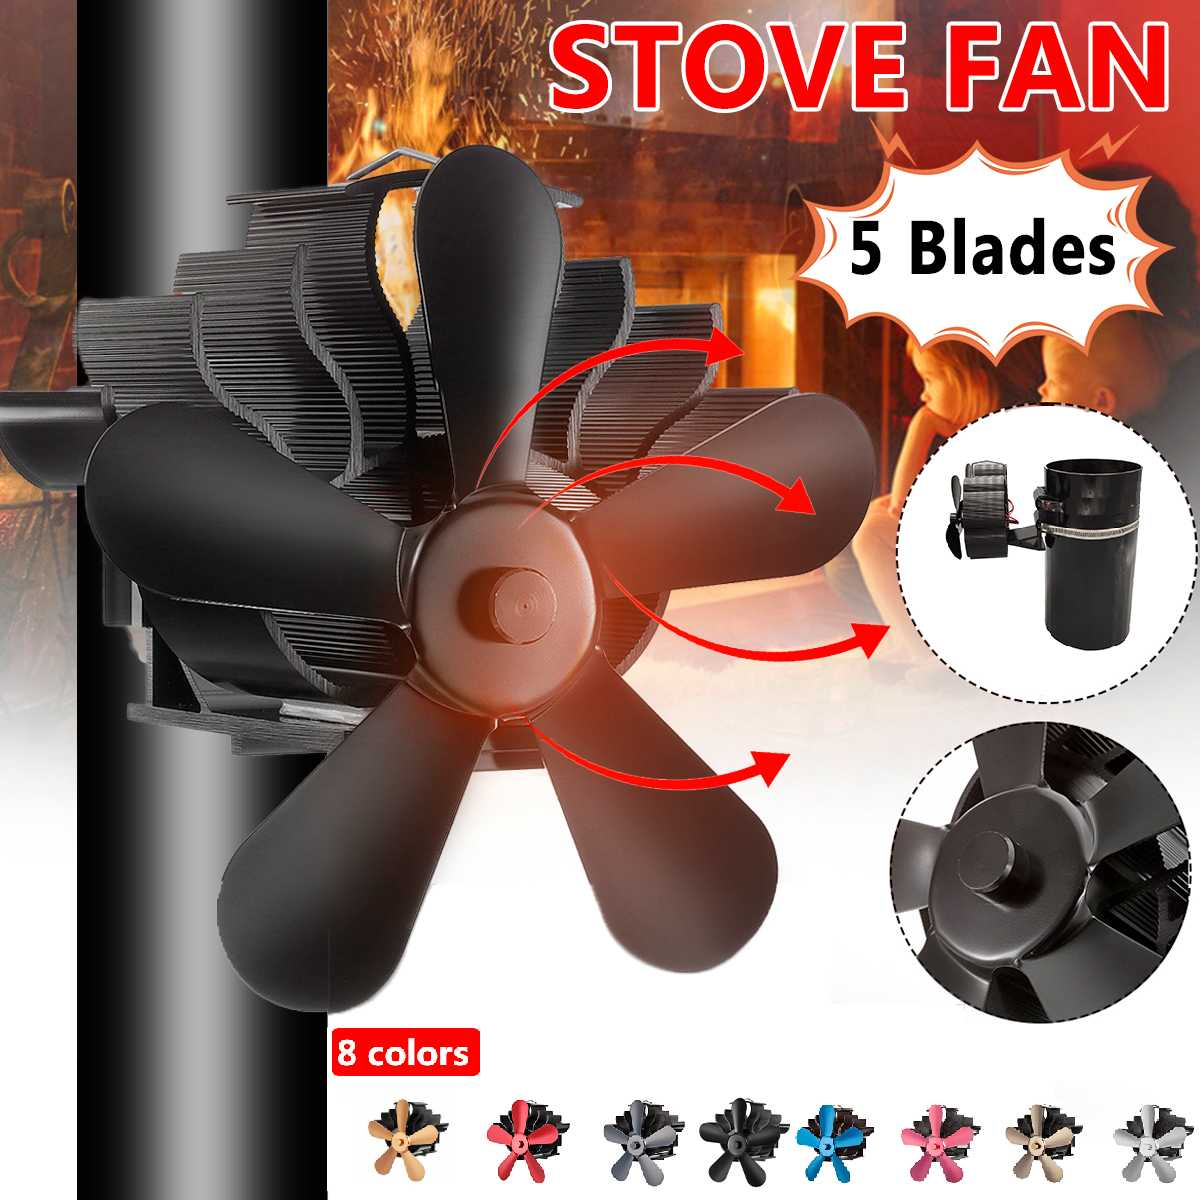 Mouted Type Black 5 Blade Heat Powered Stove Fan Komin Log Wood Burner Eco Friendly Quiet Fan Home Efficient Heat Distribution